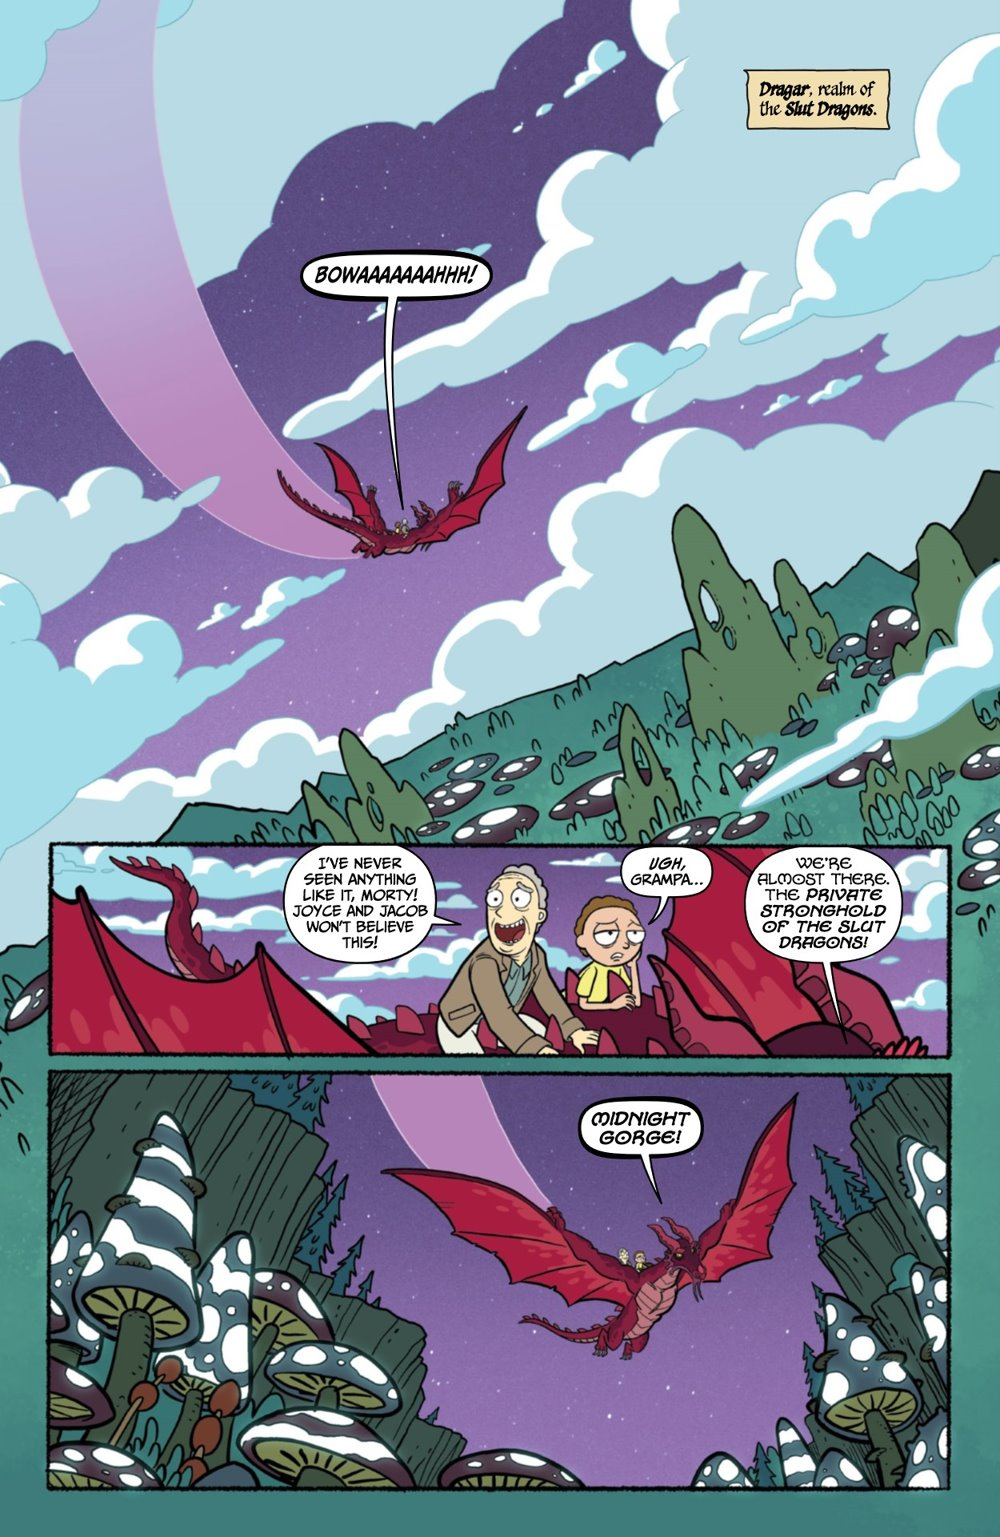 RICKMORTY-WORLDSAPART-2-REFERENCE-09 ComicList Previews: RICK AND MORTY WORLDS APART #2